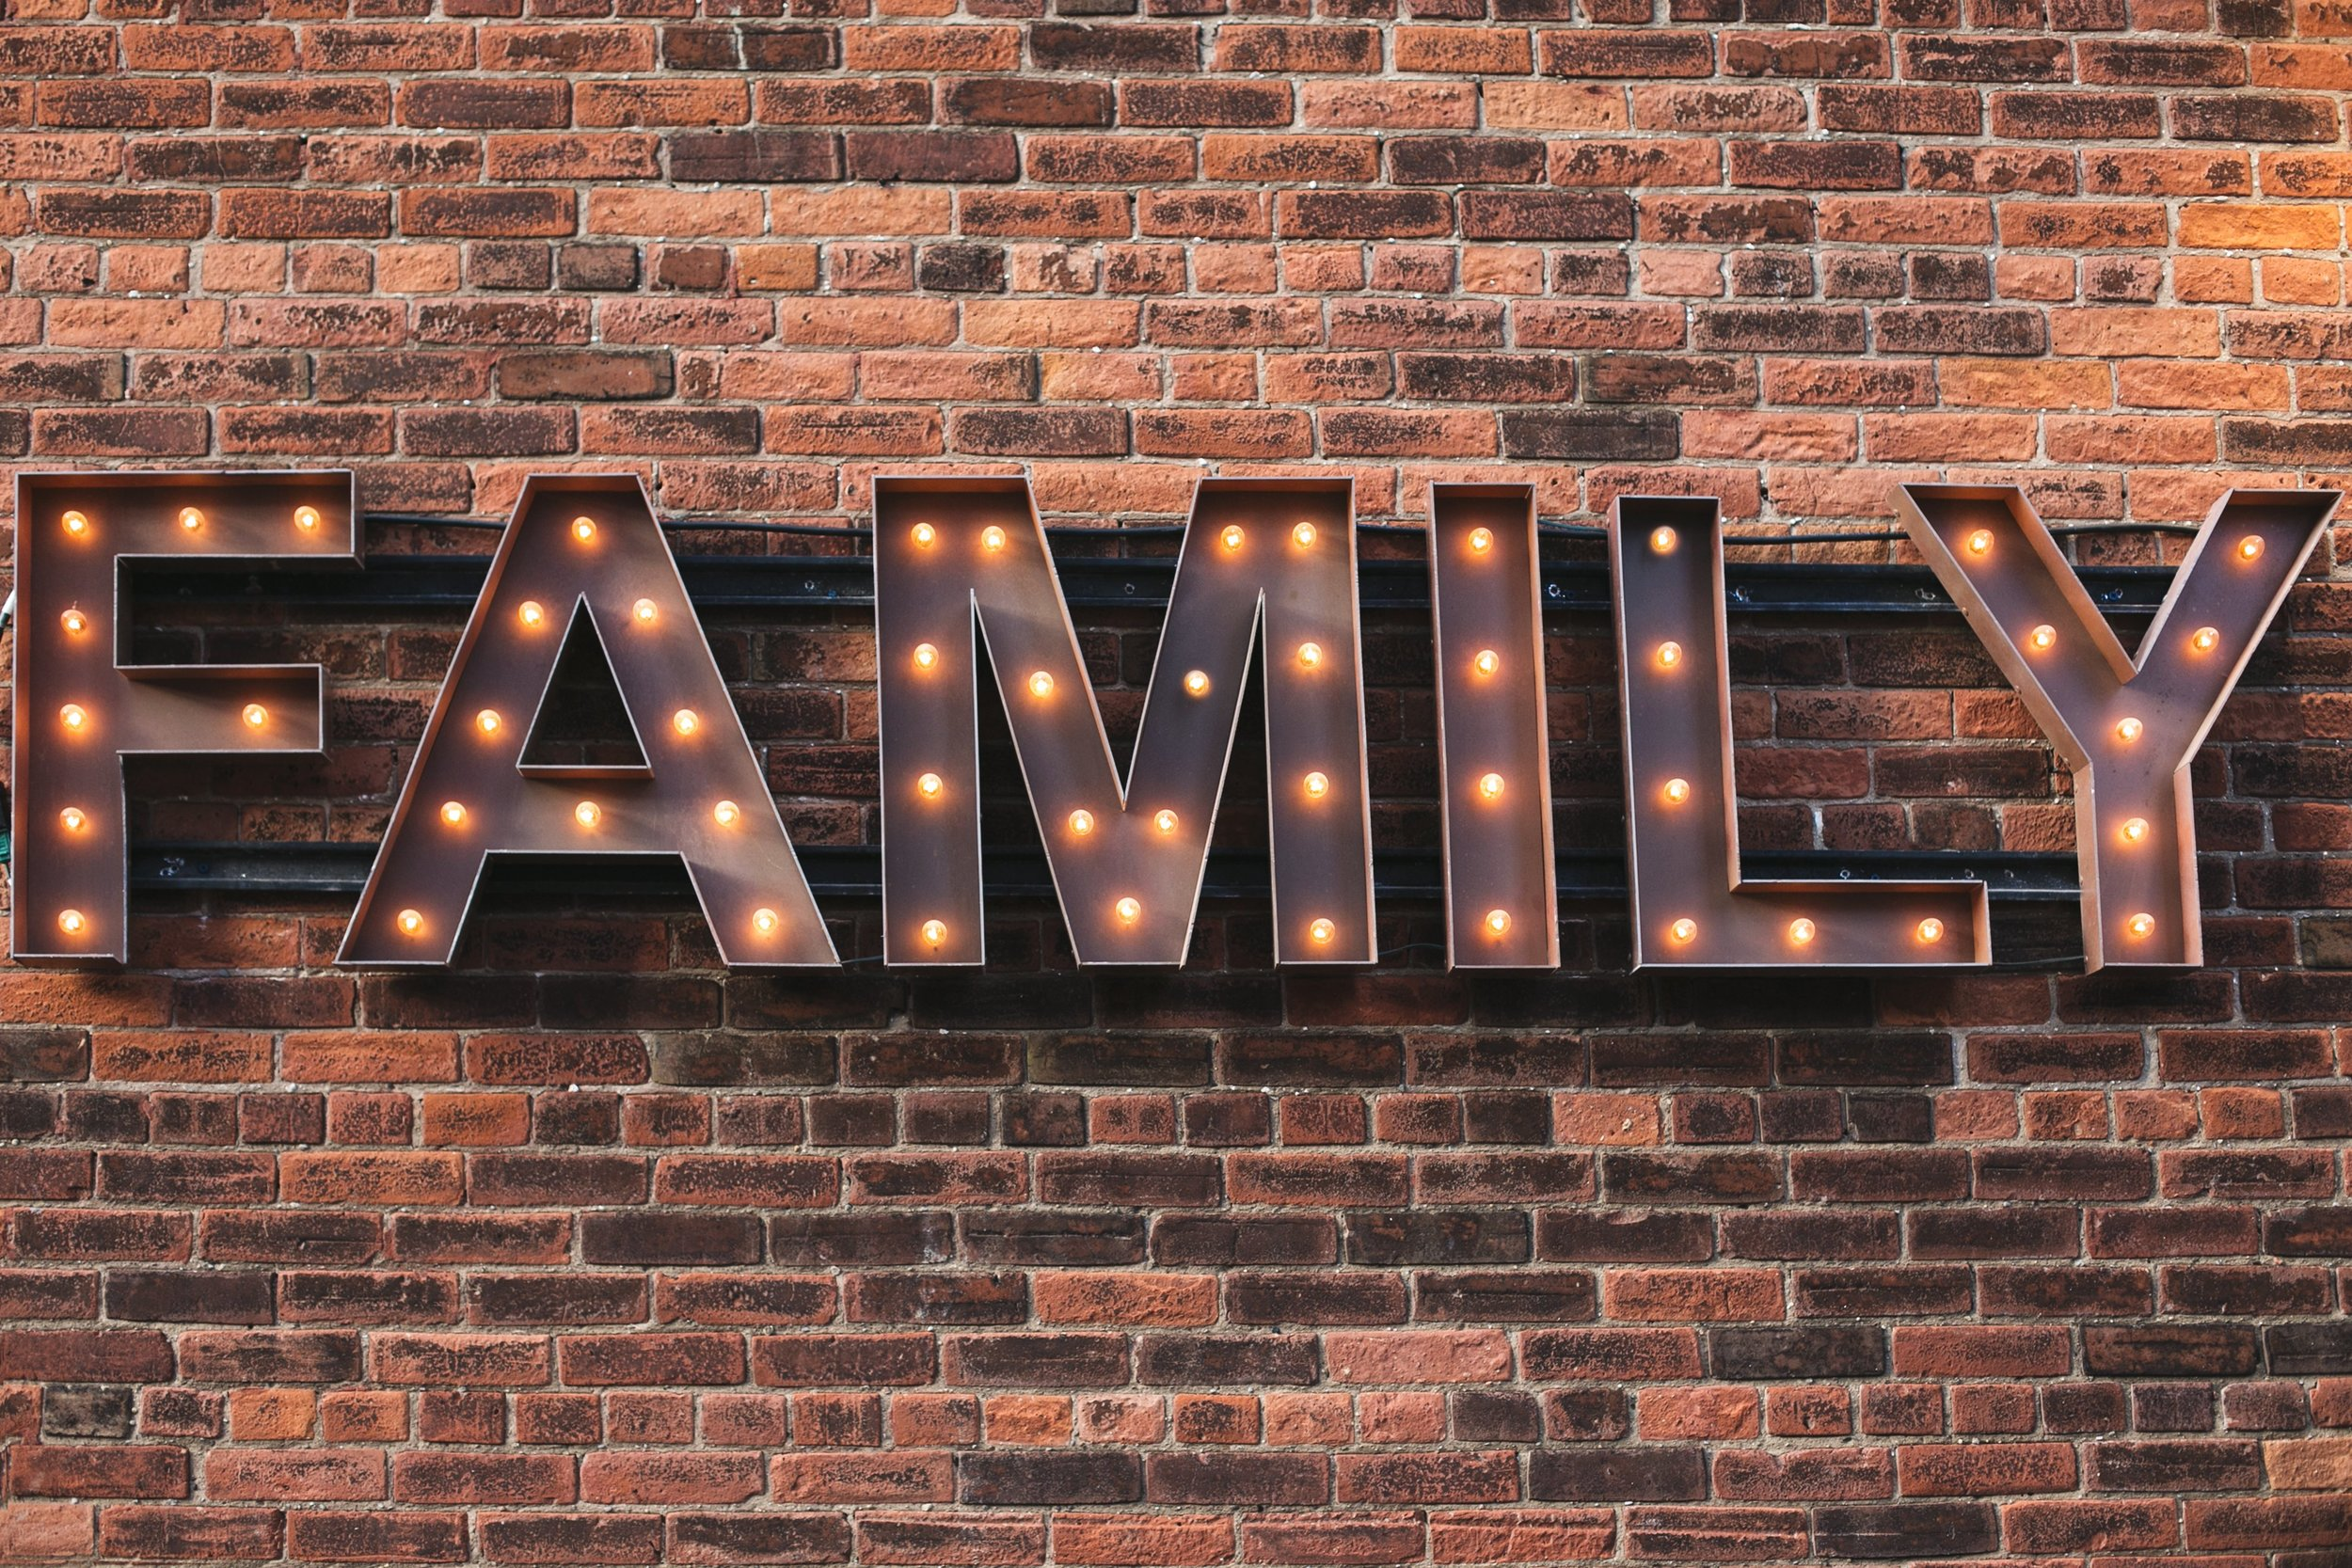 family-sign-with-lights_4460x4460.jpg